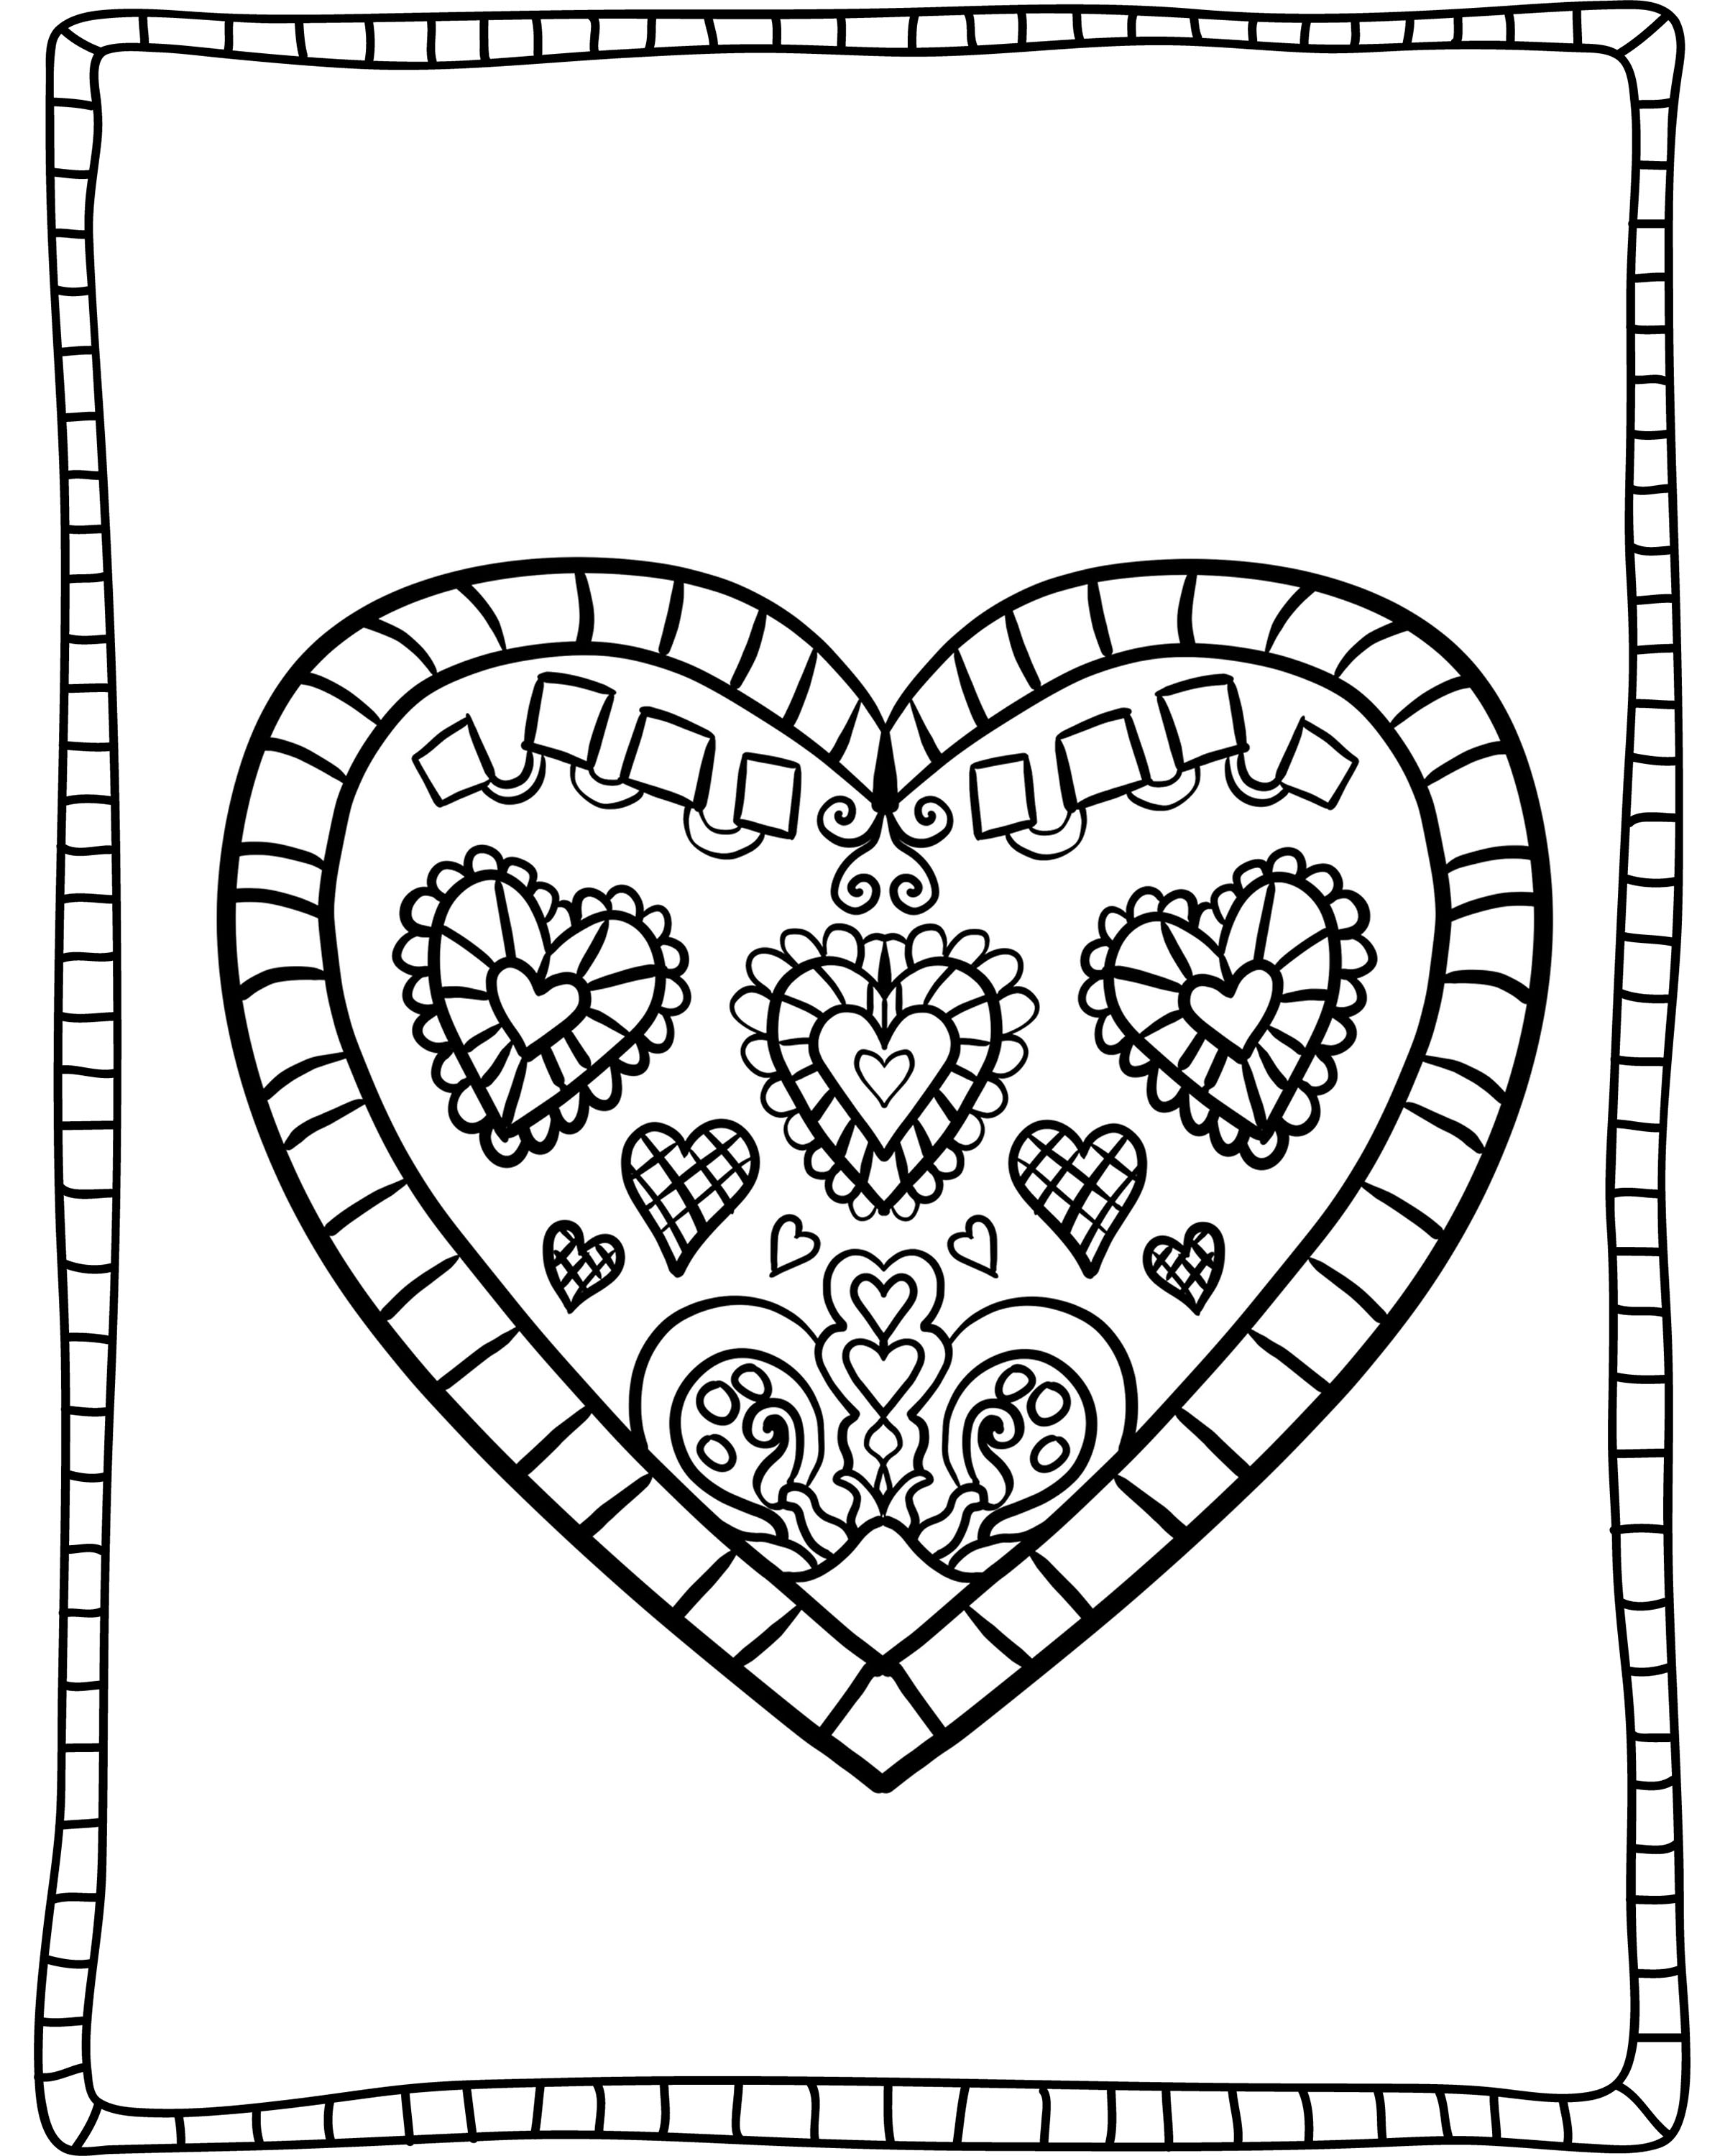 valentines heart coloring pages easy heart coloring pages for kids stripe patterns valentines heart coloring pages